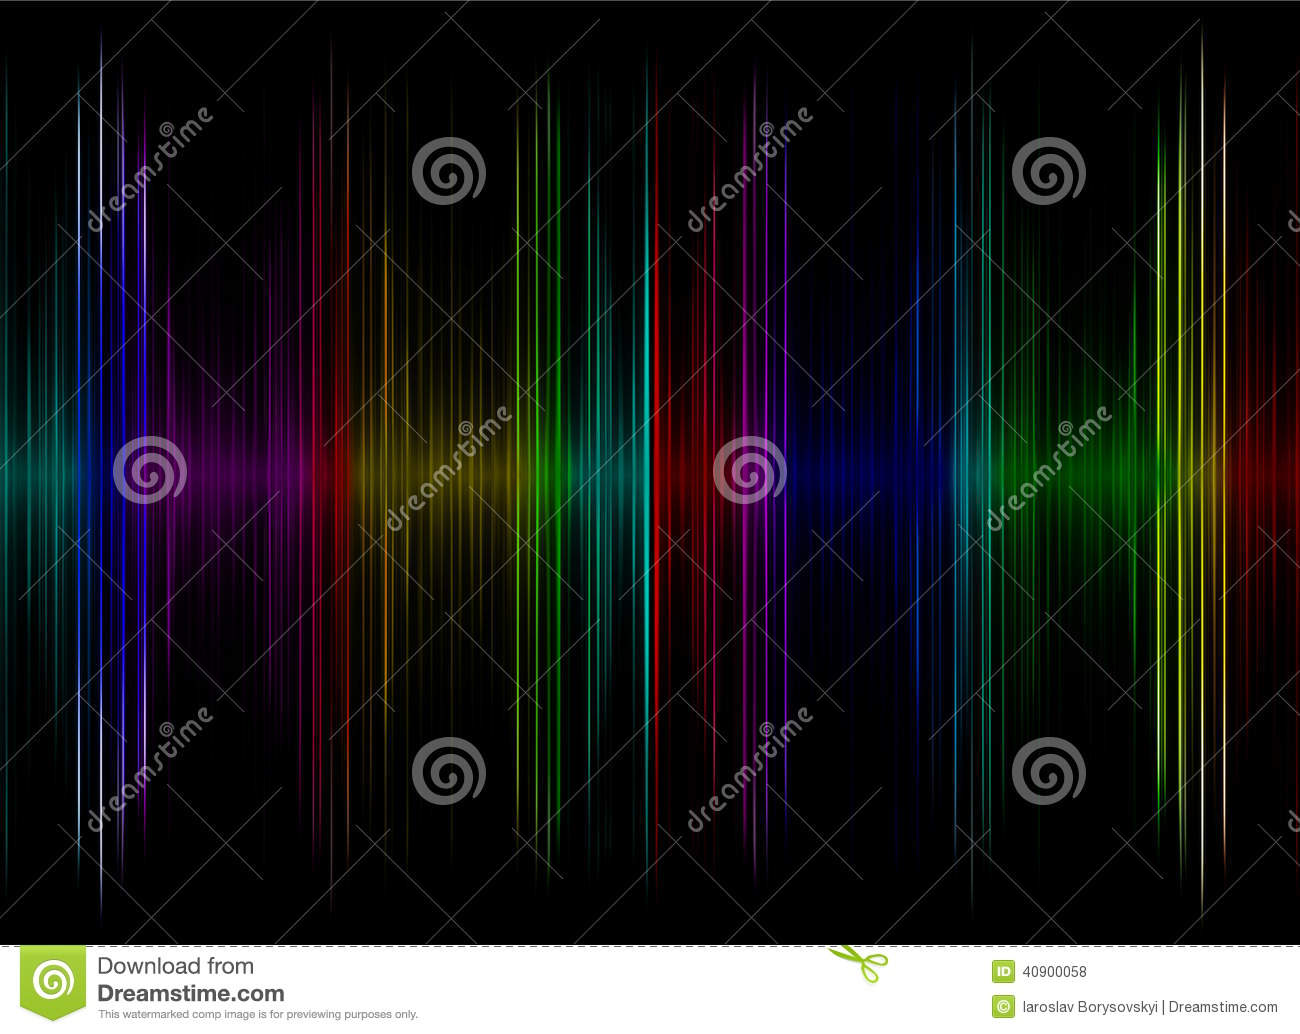 Multicolored sound equalizer display as abstract background.